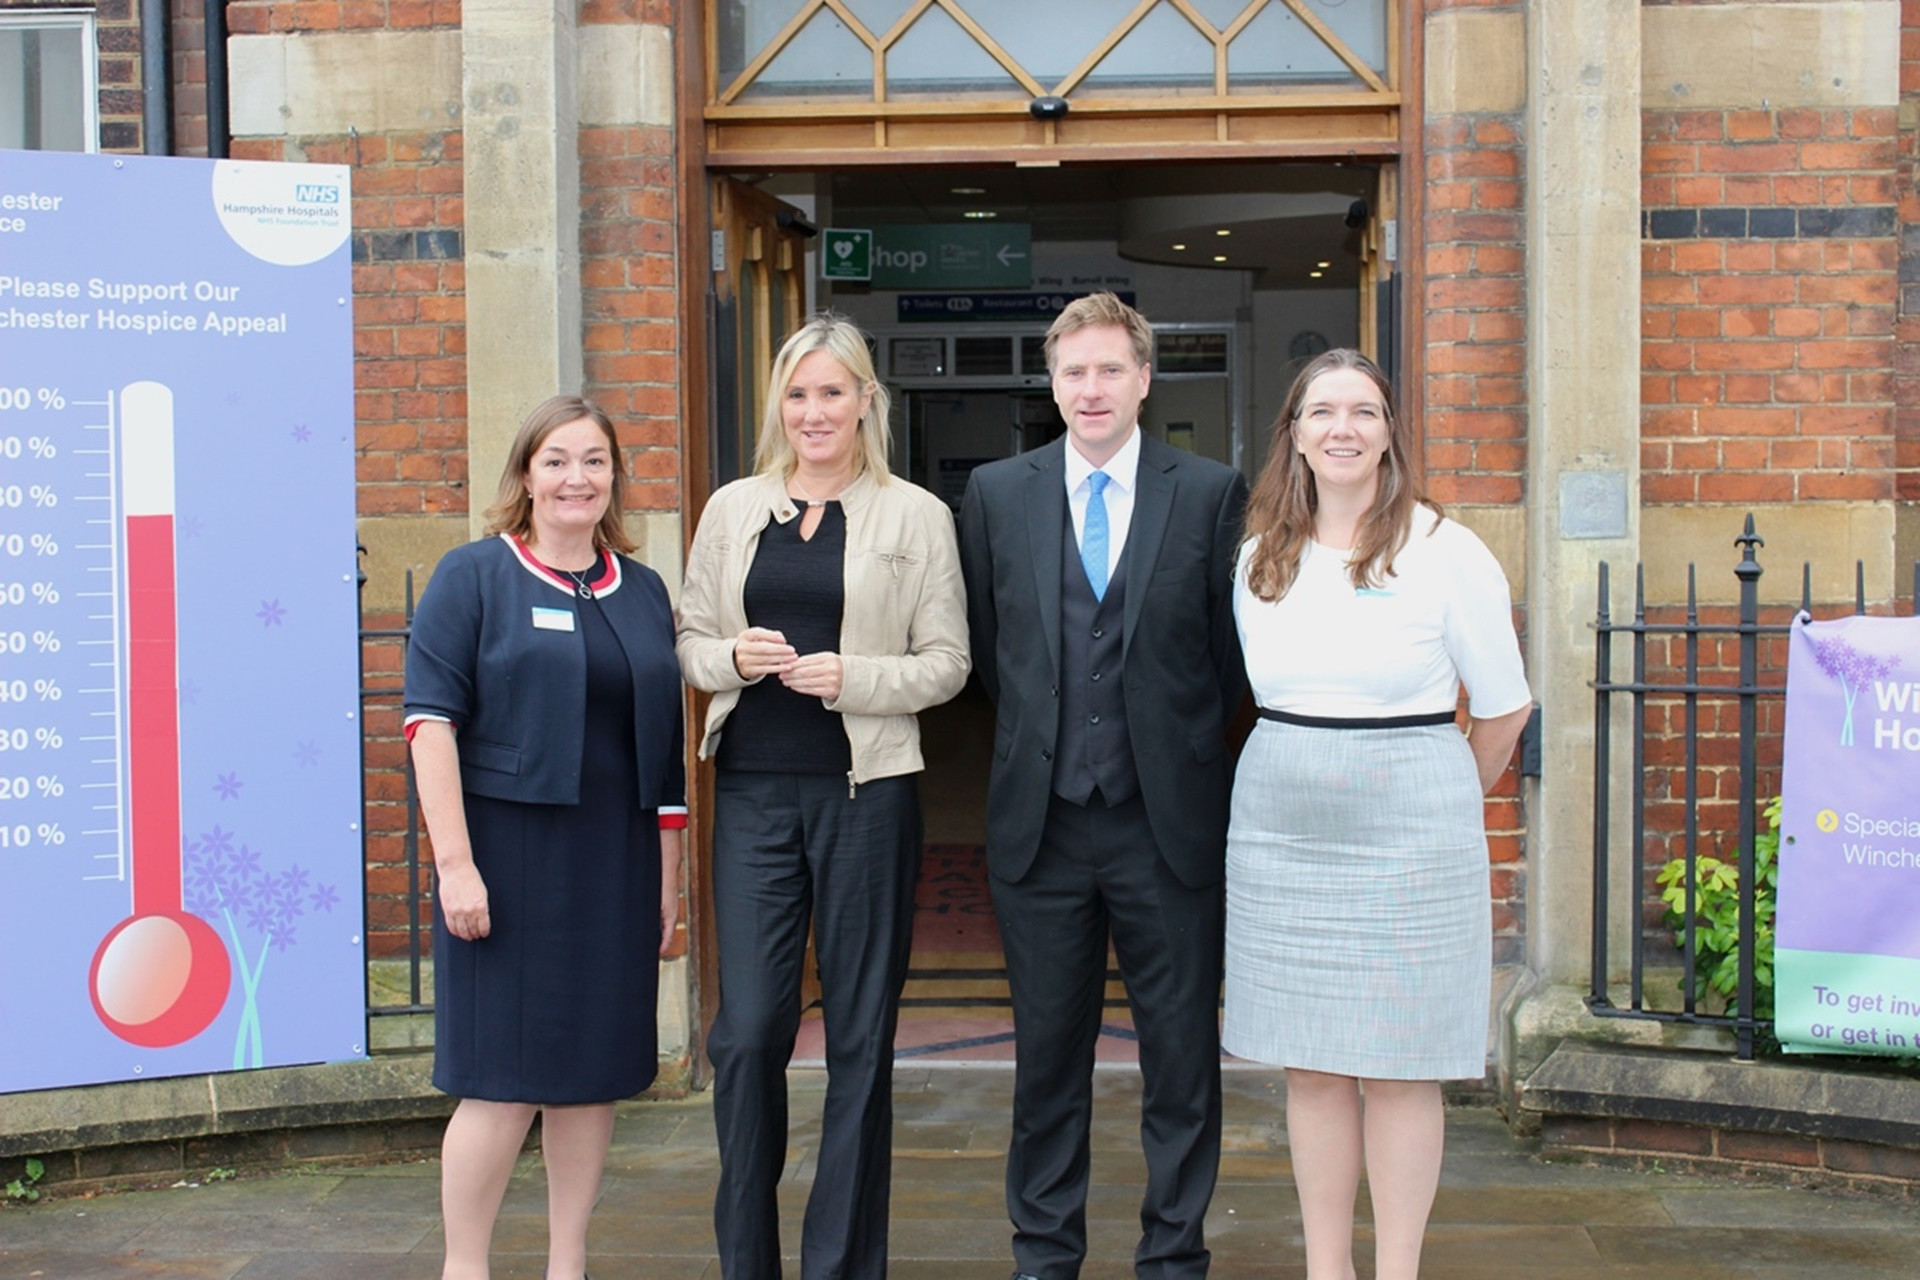 Dr Lara Alloway, chief medical officer at Hampshire Hospitals, Caroline Dinenage MP, Steve Brine MP and Alex Whitfield, chief executive of Hampshire Hospitals